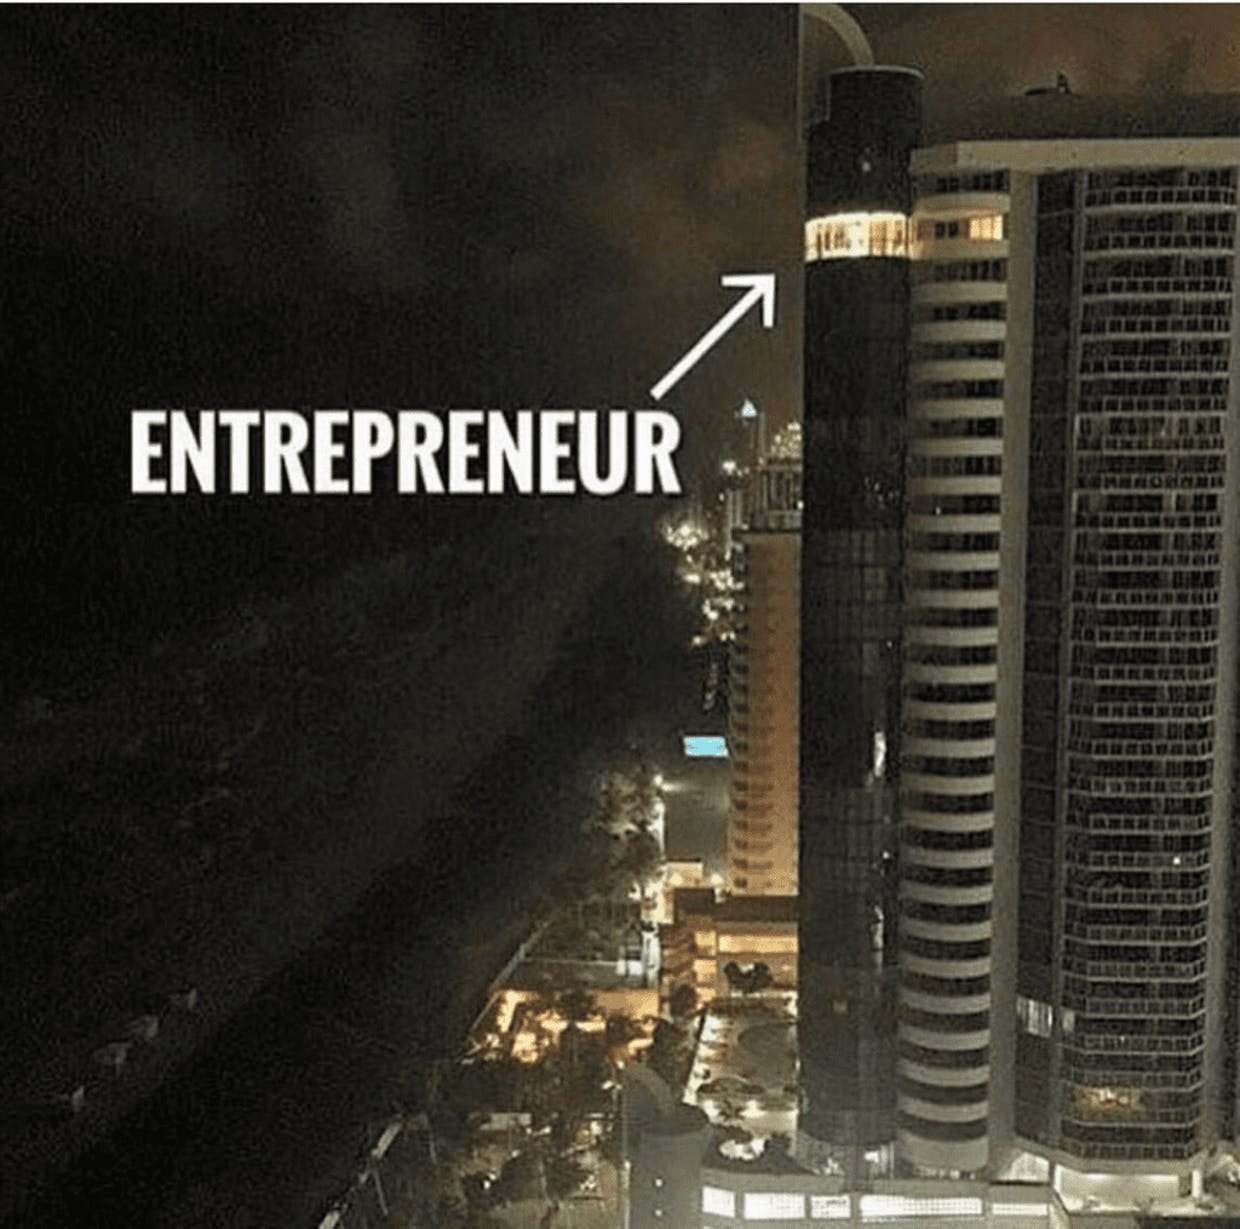 Entrepreneurs burns midnight oil to become successful